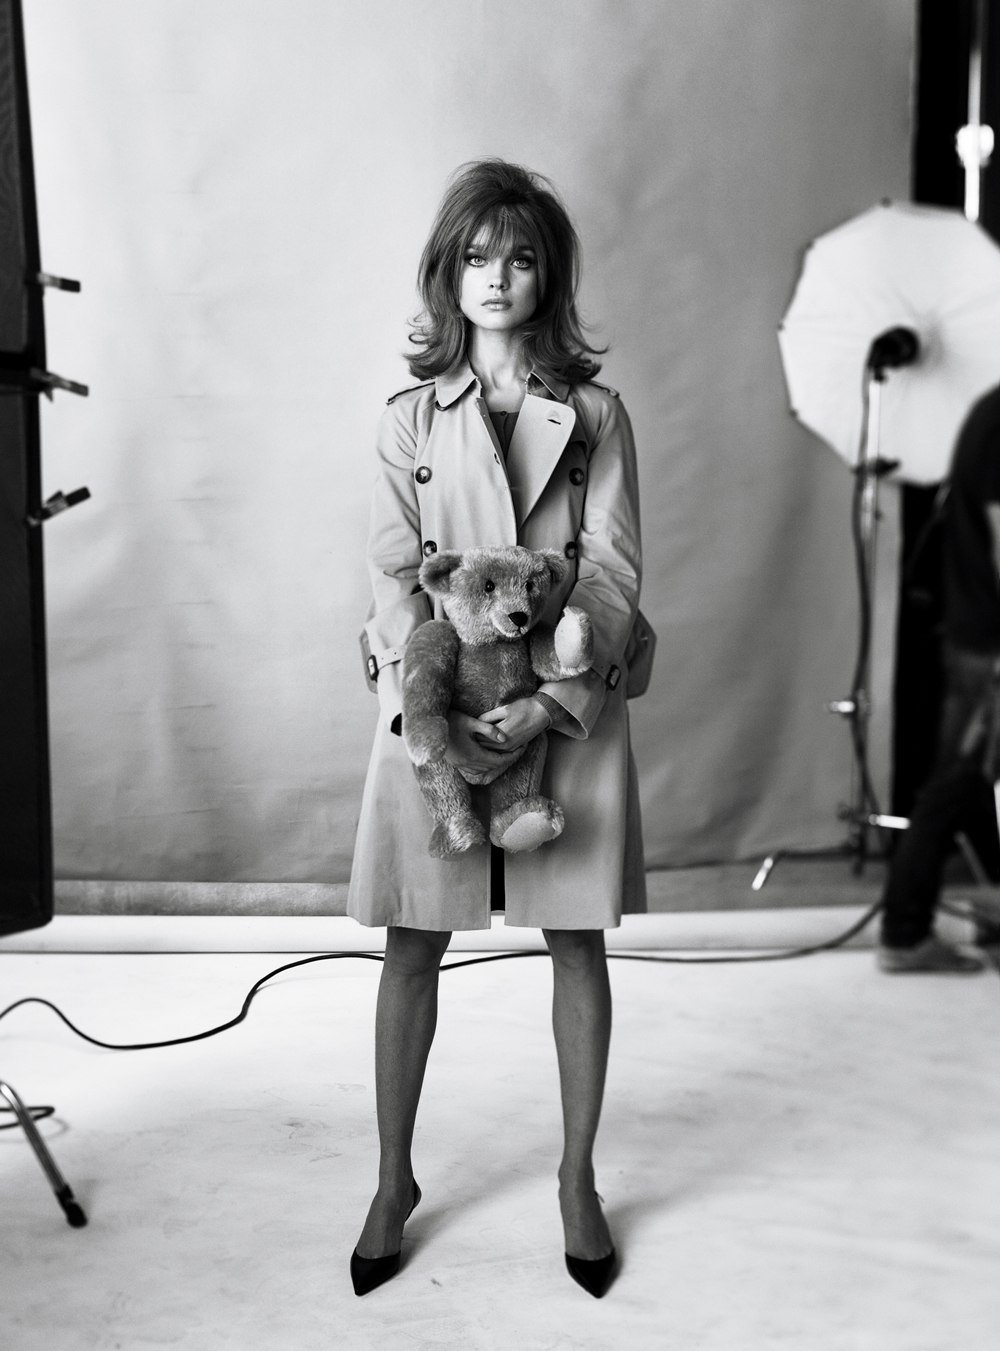 Natalia Vodianova as Jean Shrimpton photographed by Steven Meisel and styled by Grace Coddington for The great pretender / Vogue US May 2009 / via fashioned by love british fashion blog